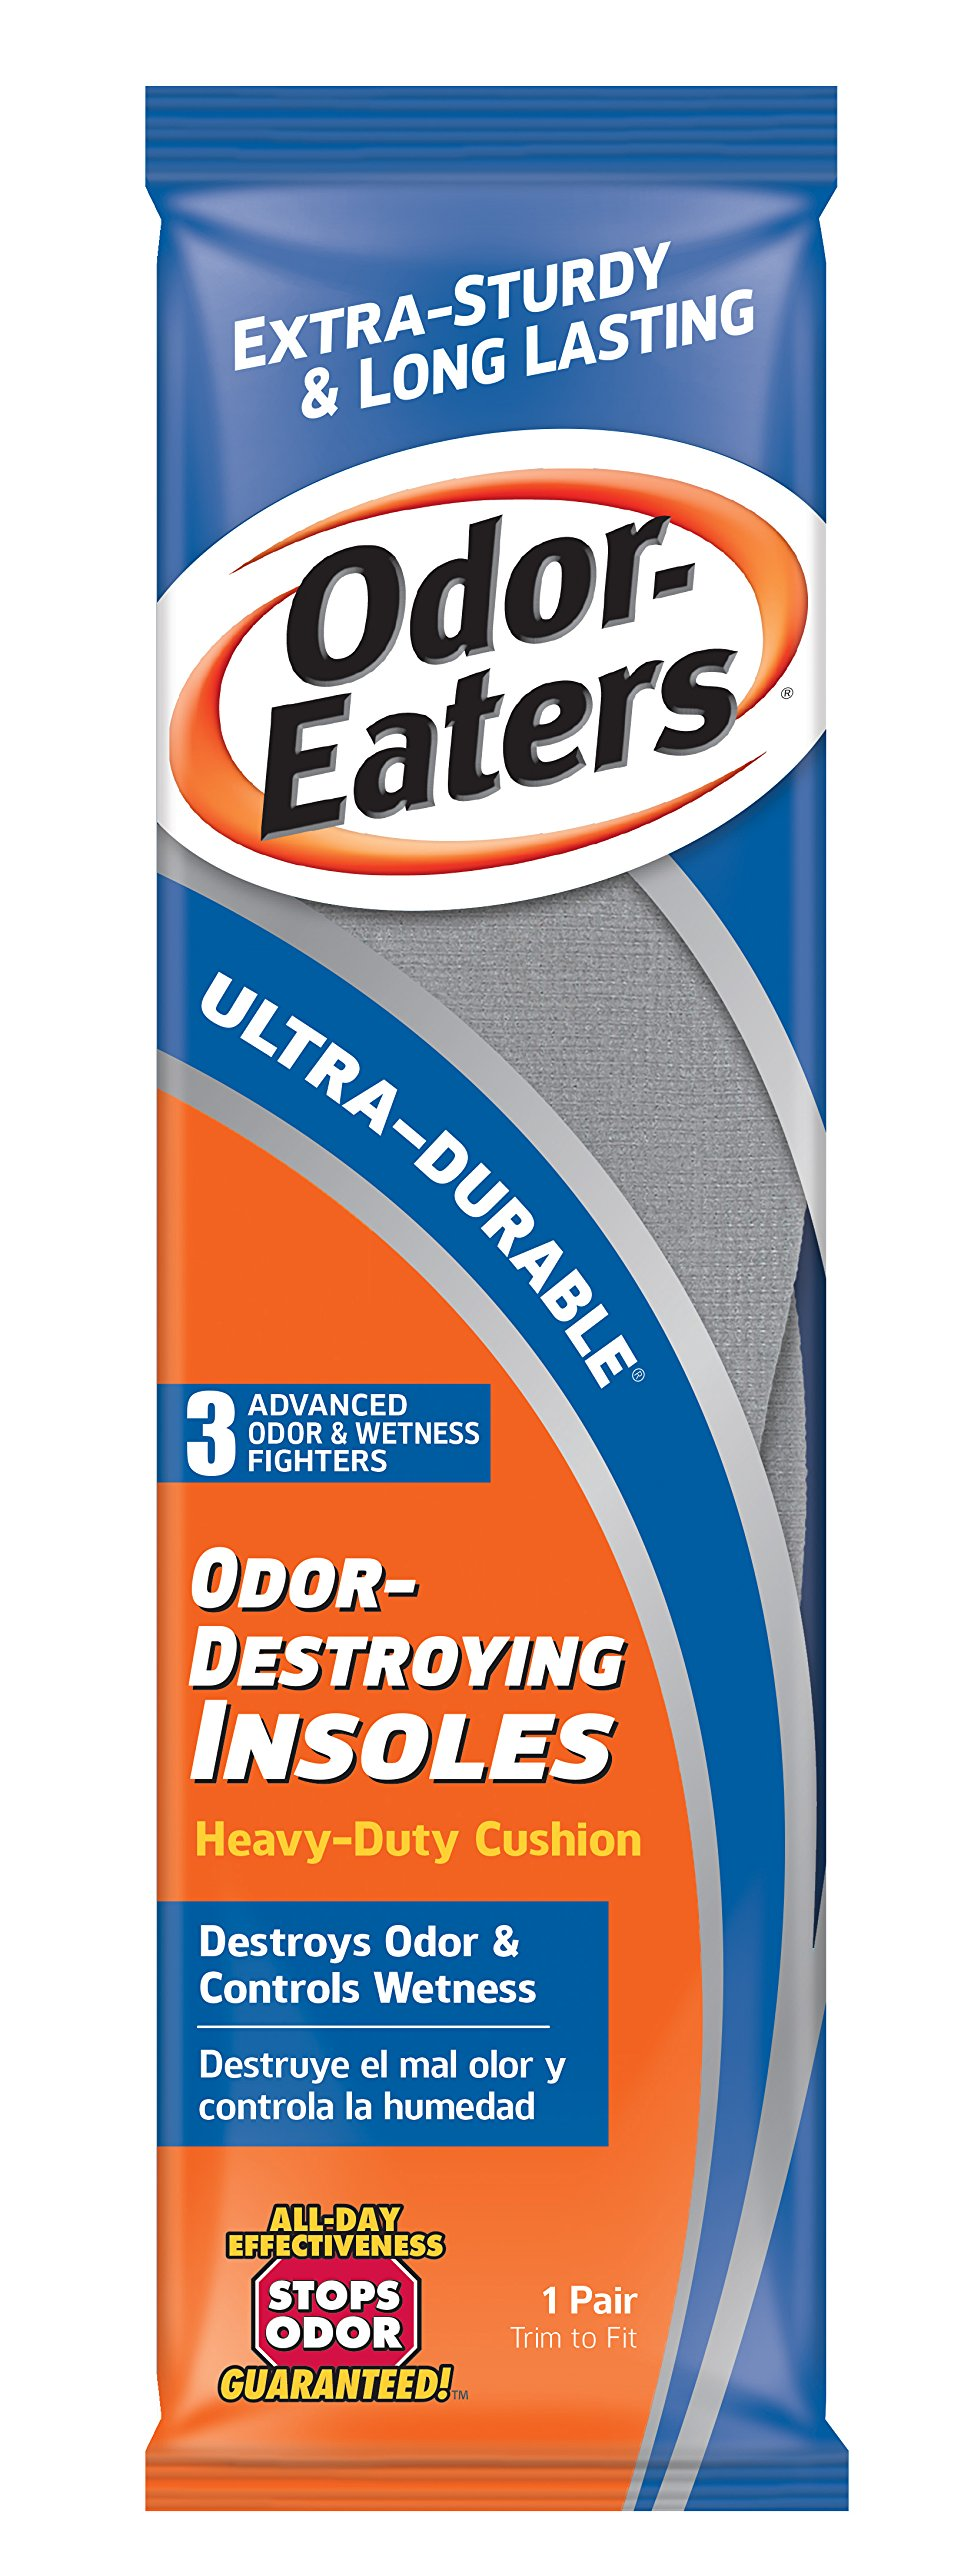 Odor-Eaters Ultra Durable, Heavy Duty Cushioning Insoles, 1 pair